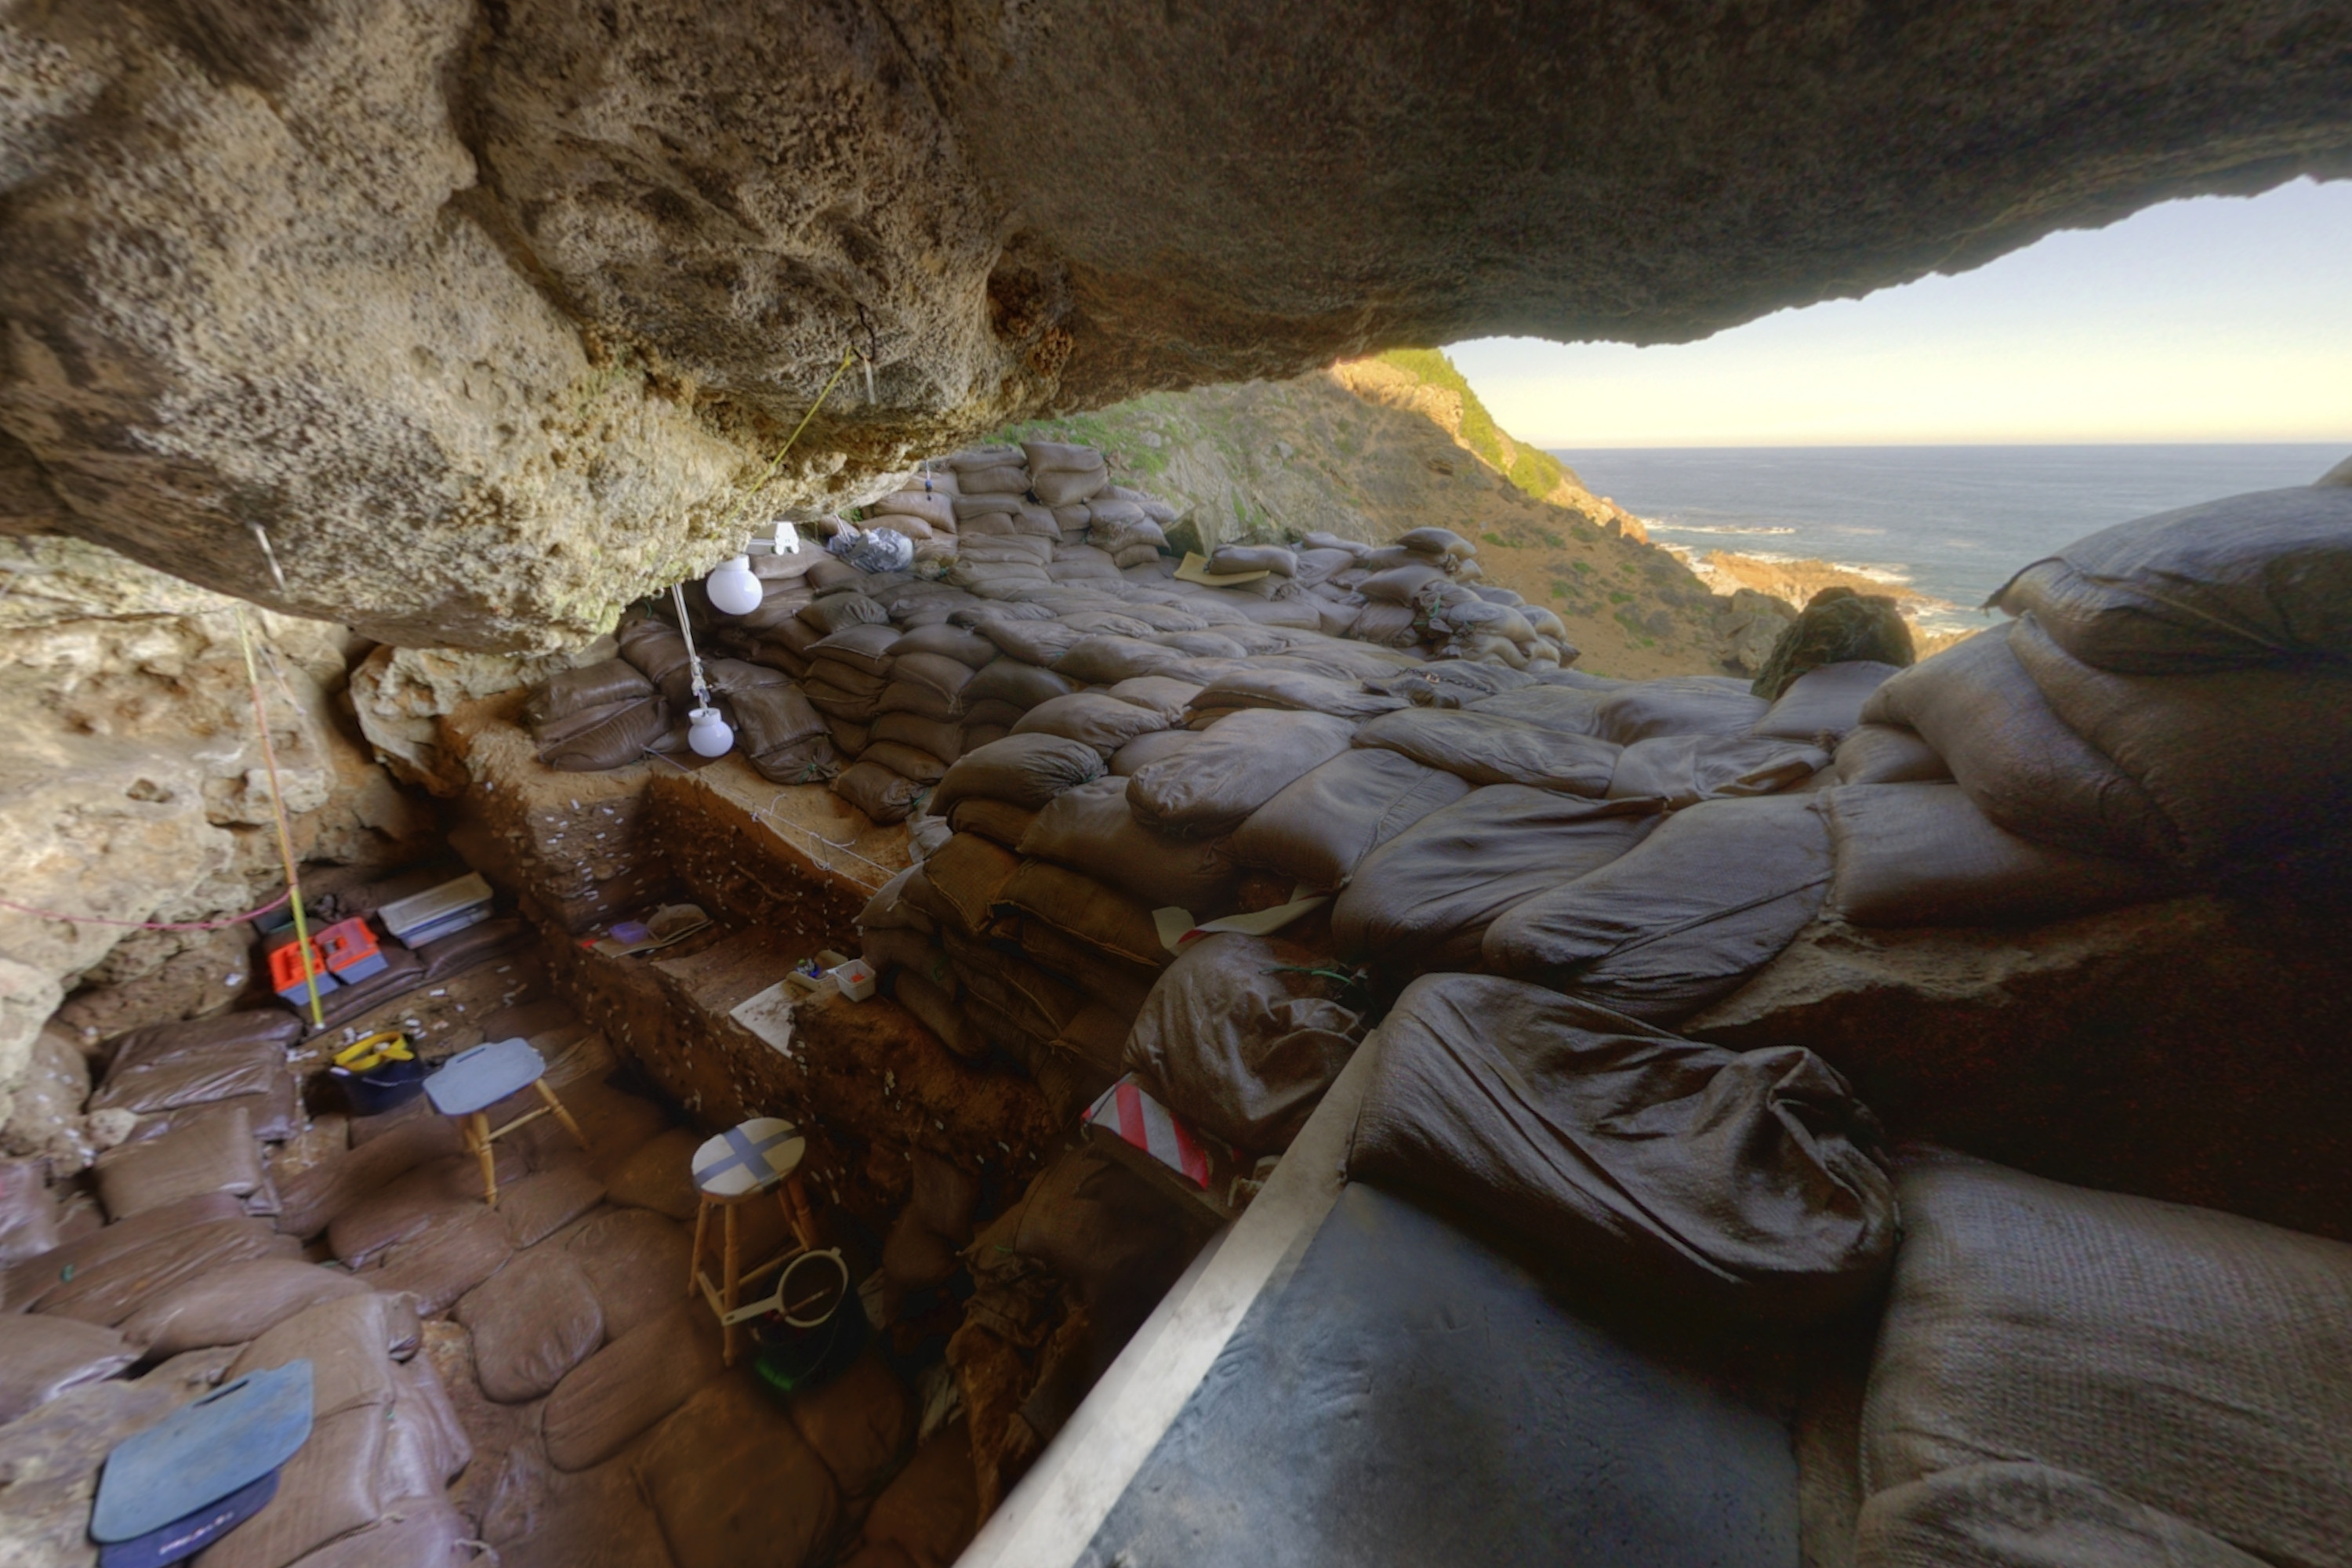 Innovation of Stone Age humans 'not linked with climate change'